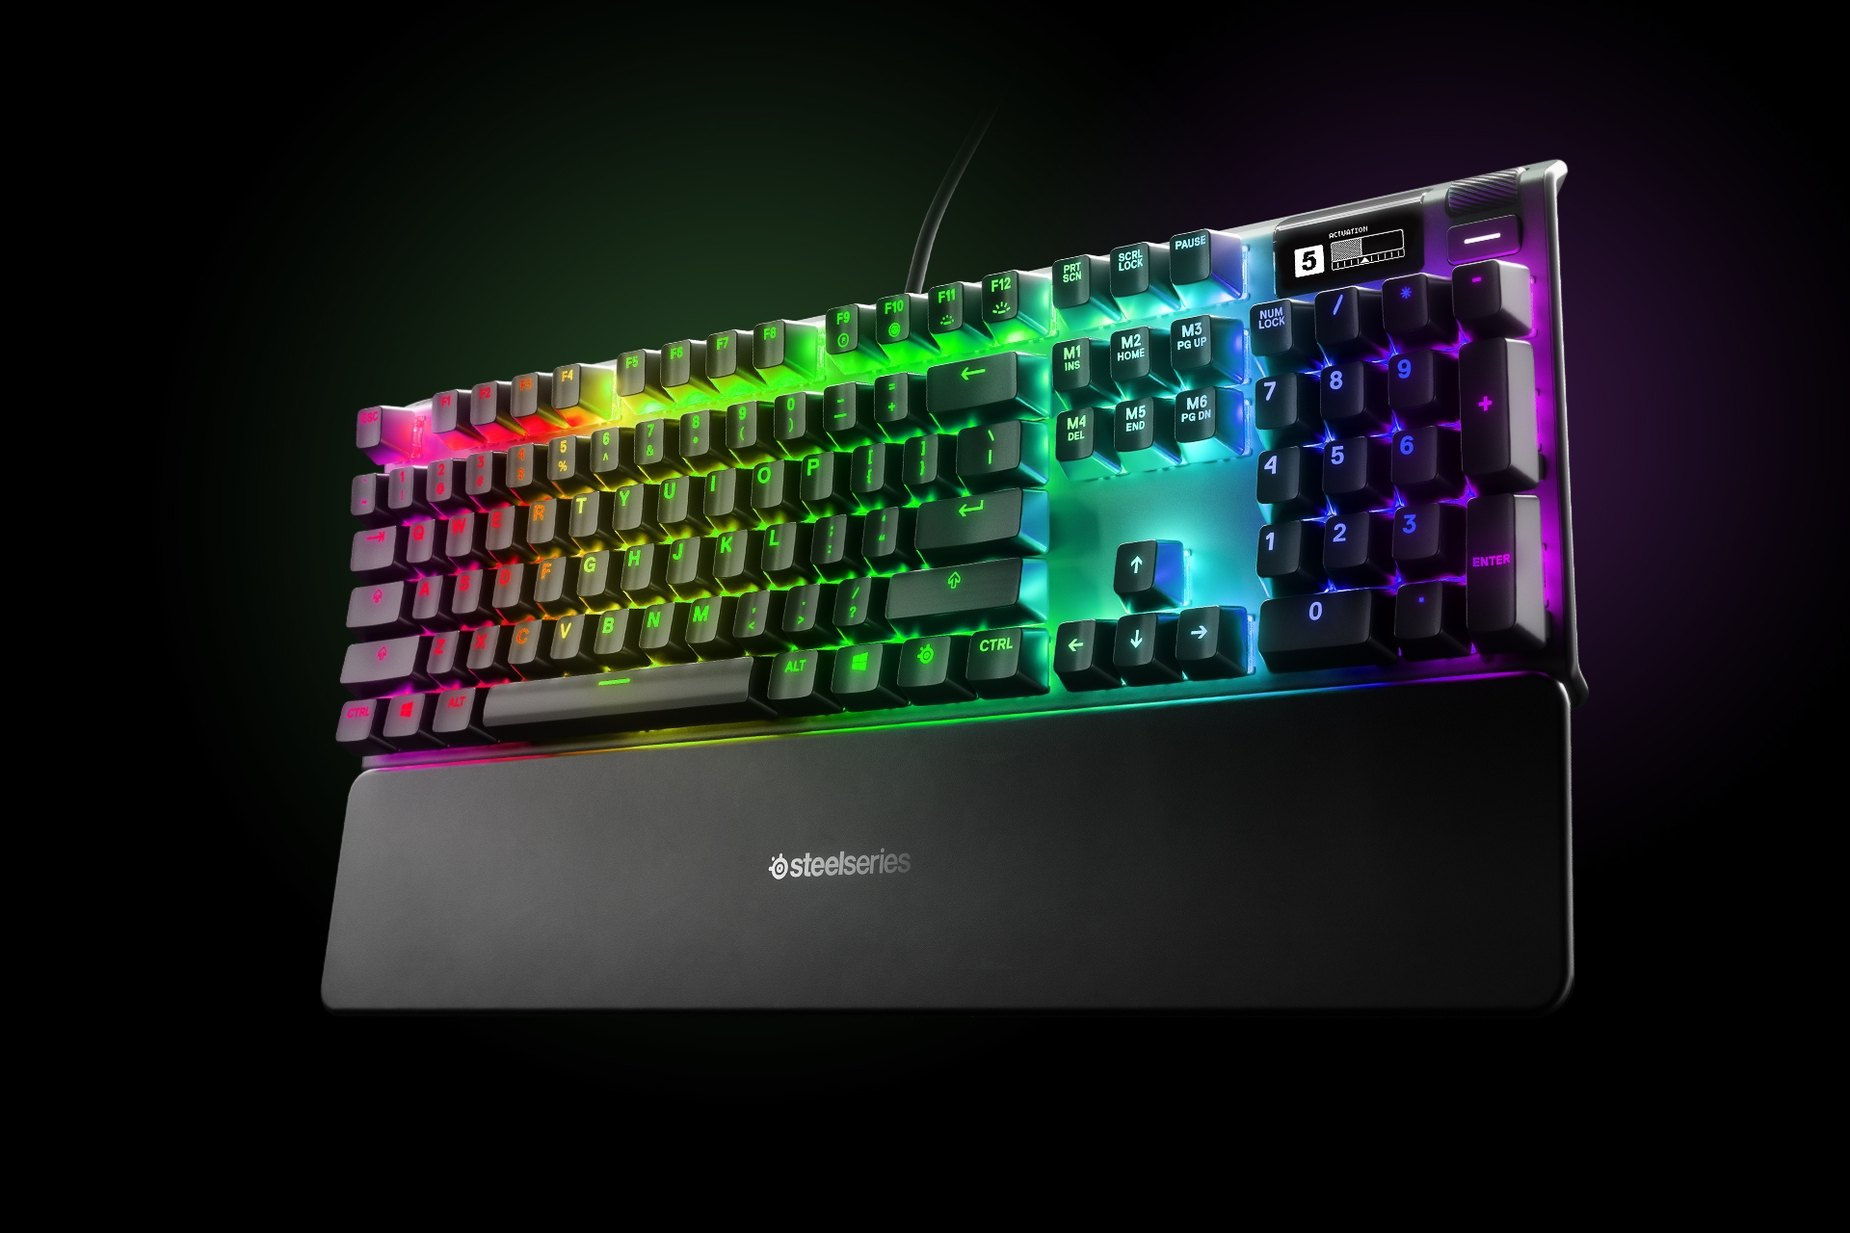 US English - APEX PRO gaming keyboard with the illumination lit up on dark background, also shows the OLED screen and controls used to change settings, switch actuation, and adjust audio